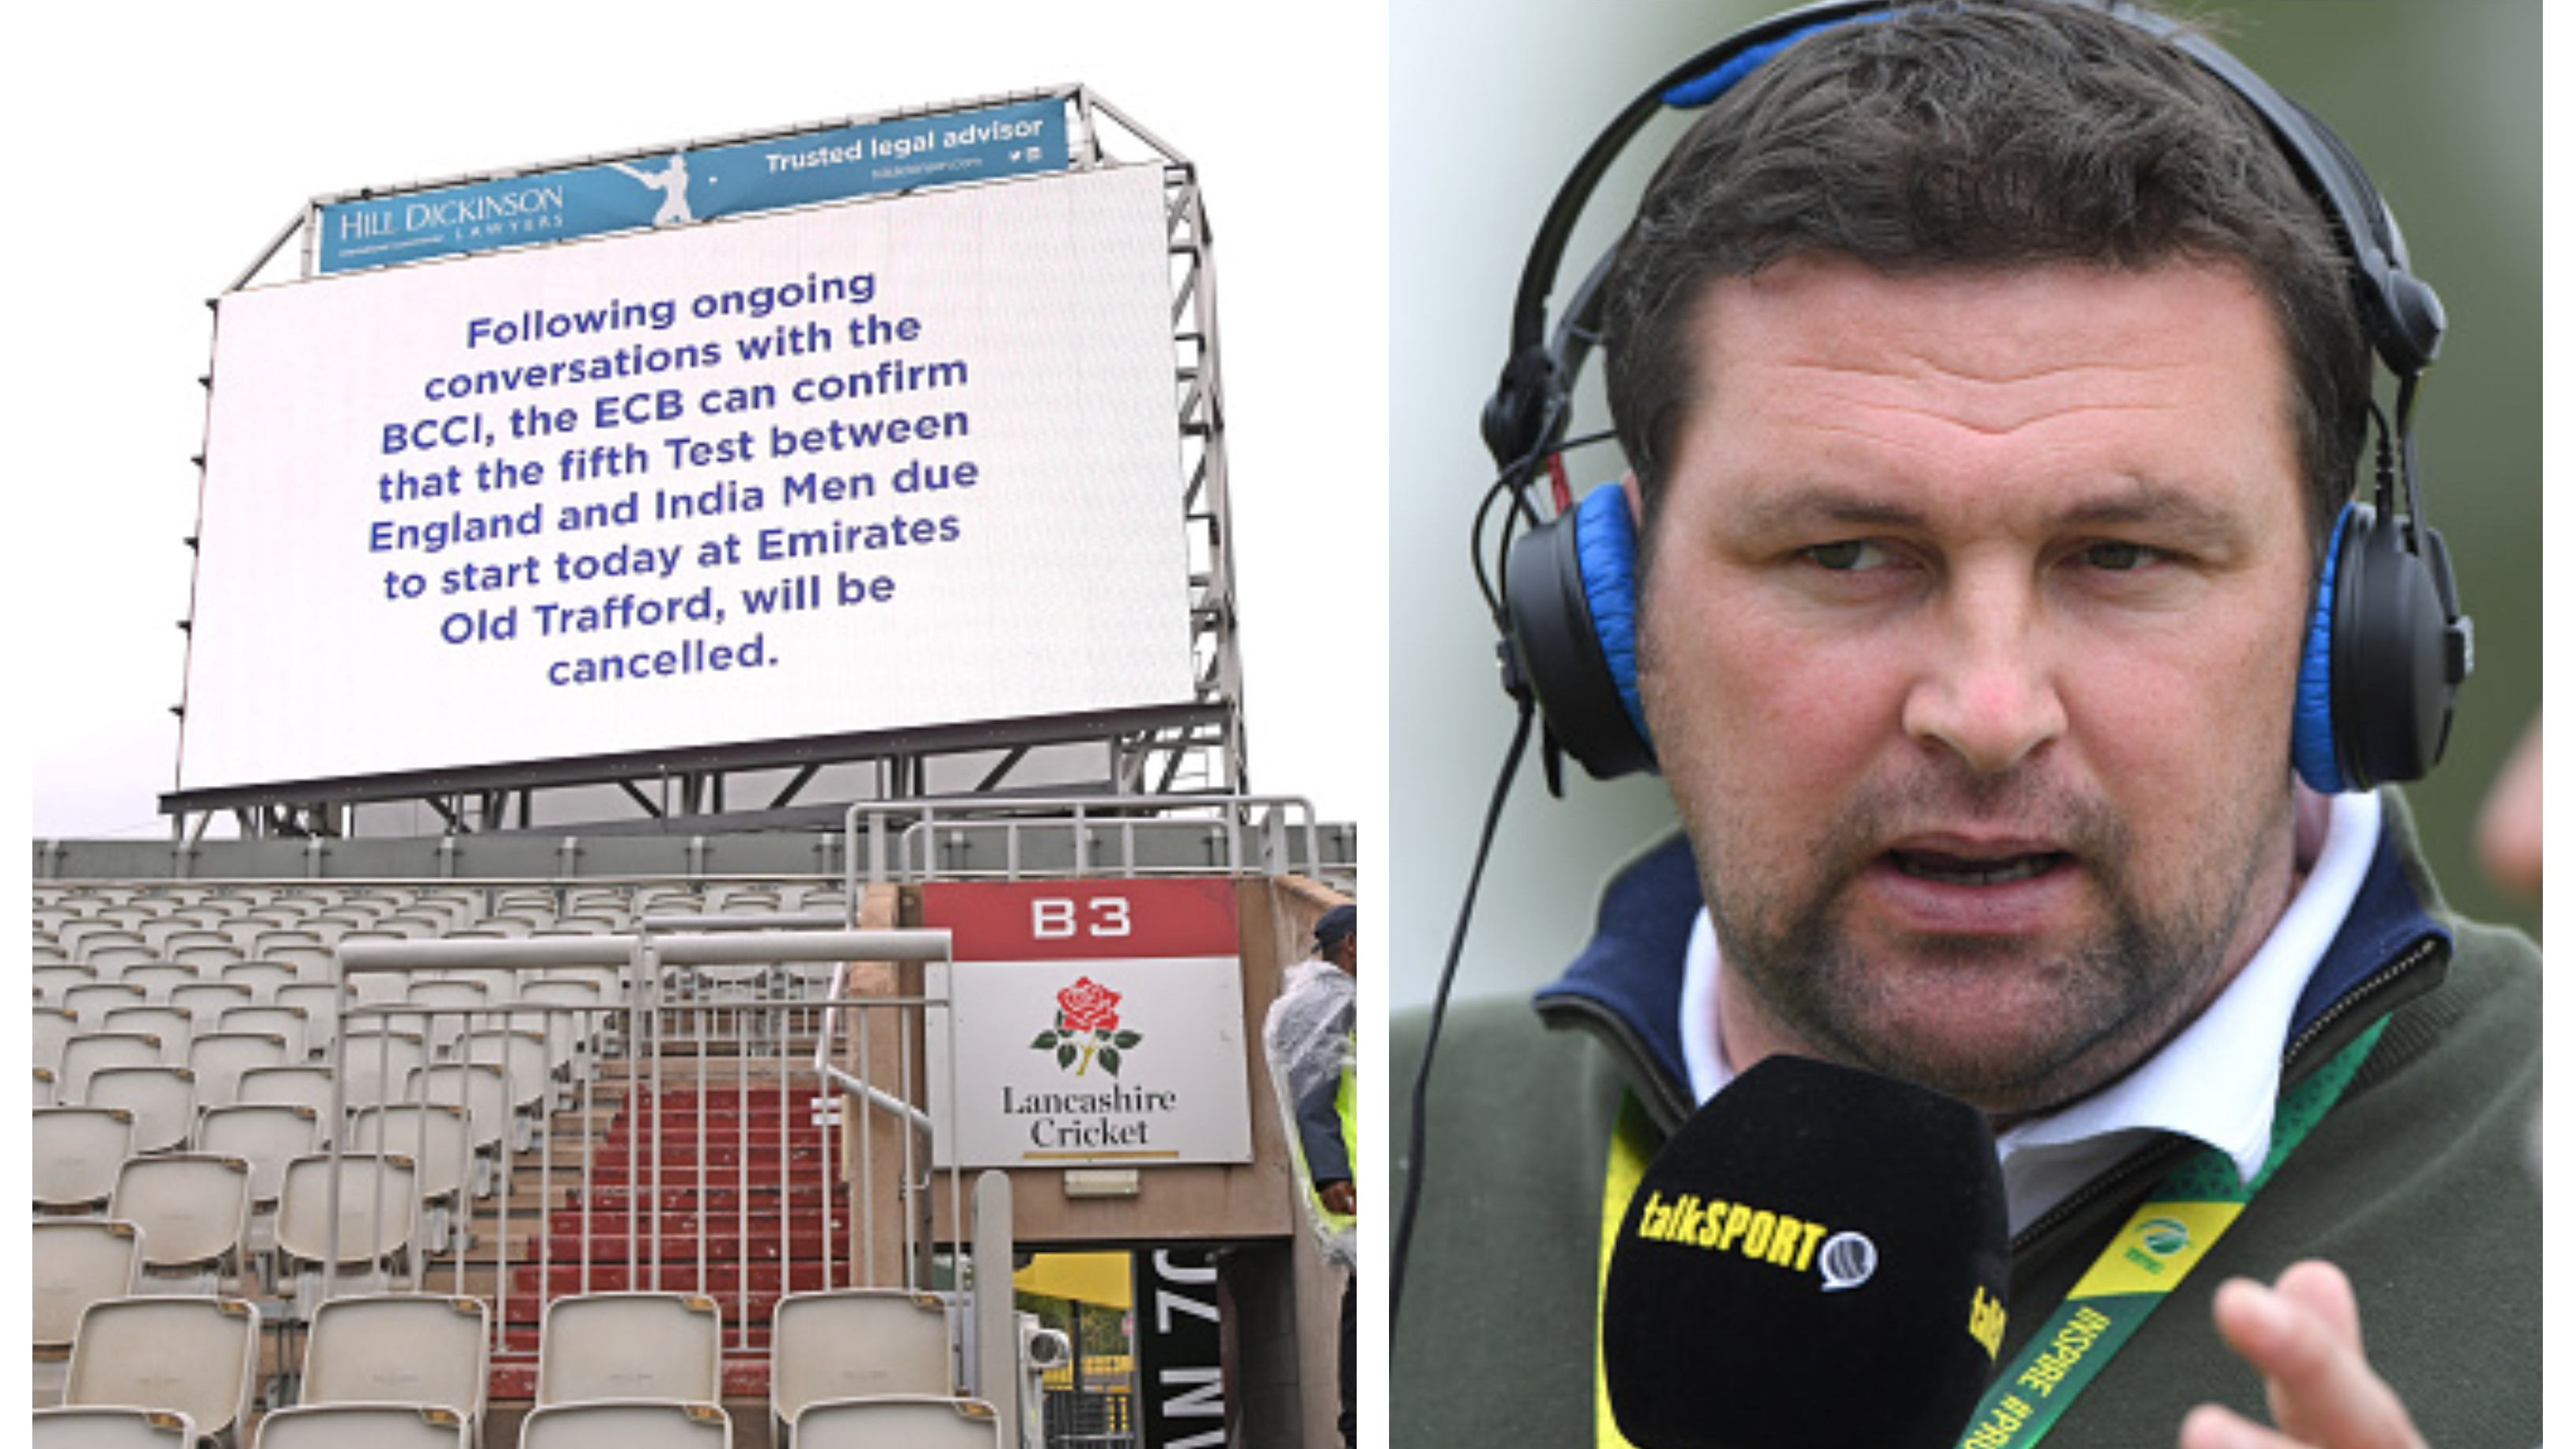 ENG v IND 2021: 'Beginning of the end for Test cricket', Steve Harmison claims 5th Test was cancelled for IPL